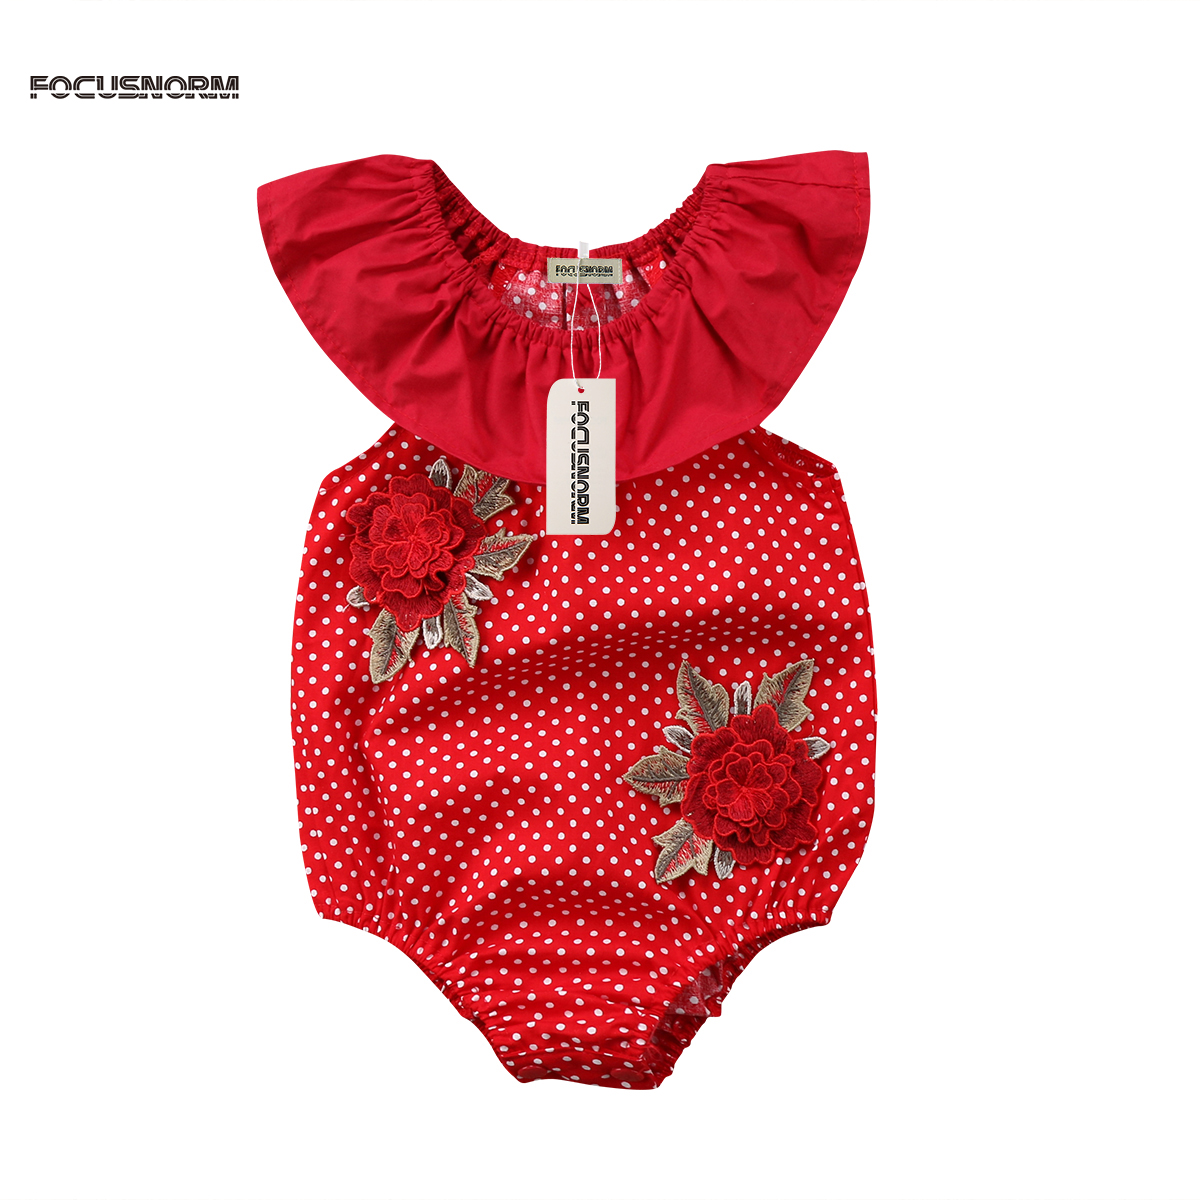 Newborn Baby Girls Floral Princess Bodysuits 3D Rose Print Dots Print Jumpsuit Outfits Clothes Sleeveless Summer Bodysuit 2018